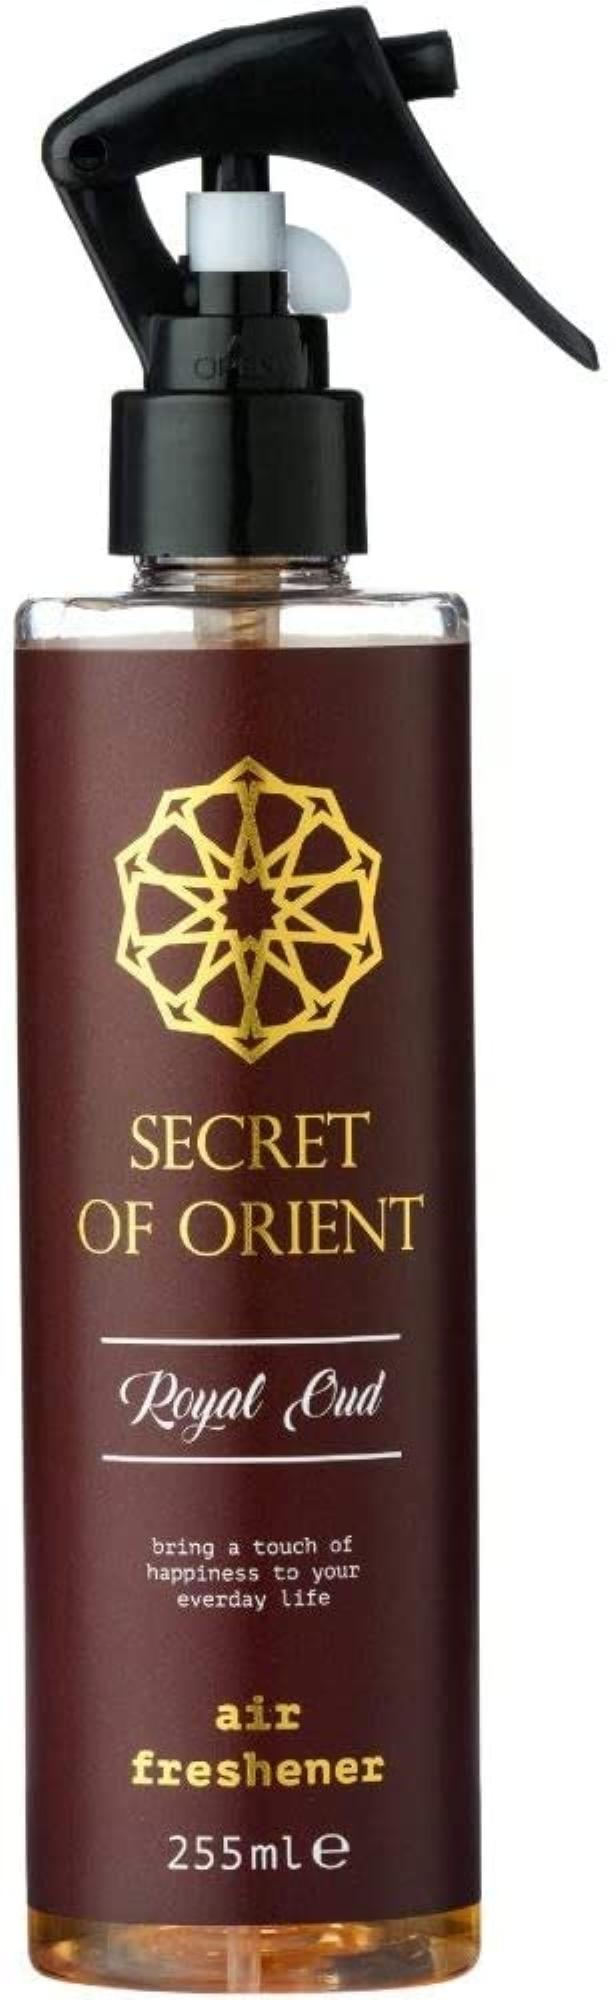 Spray Diffuseur d'ambiance Brumisateur - Secret of Orient 255 ml - Royal Oud & Rose